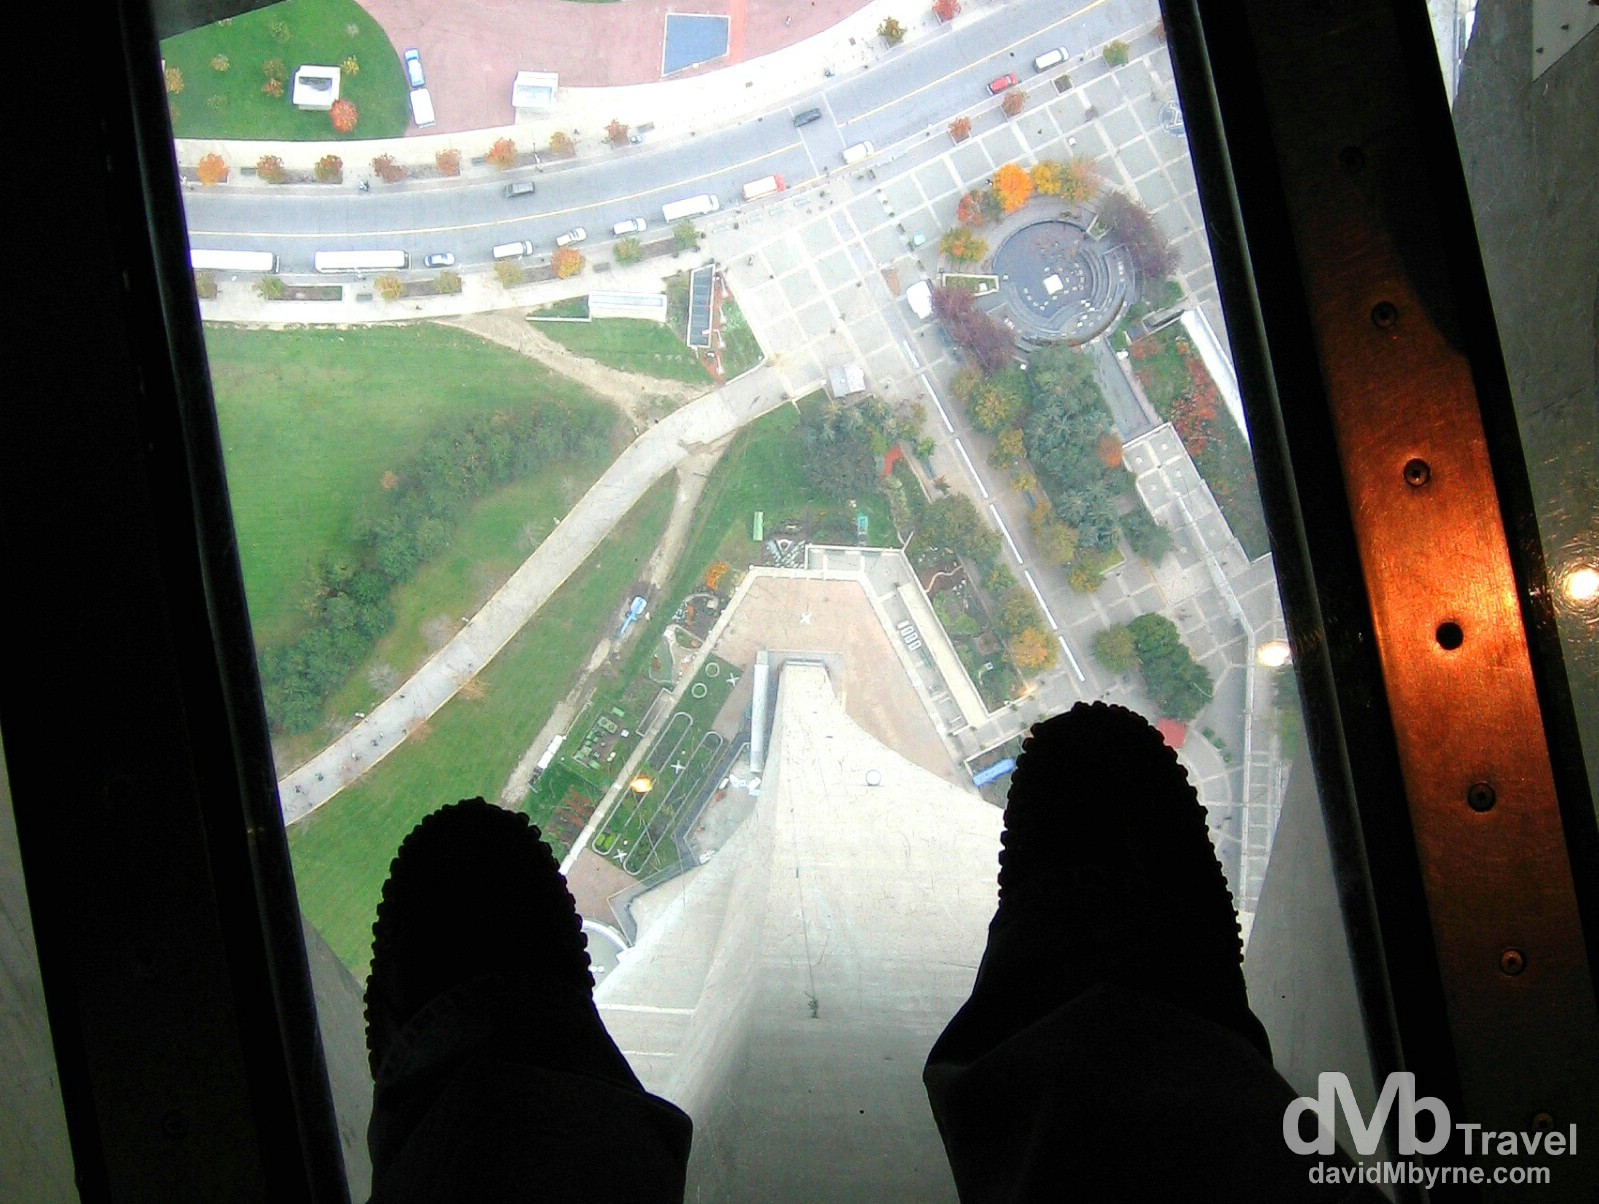 Standing on the glass floor of the viewing deck of the CN Tower in Toronto, Ontario, Canada. October 10, 2006.